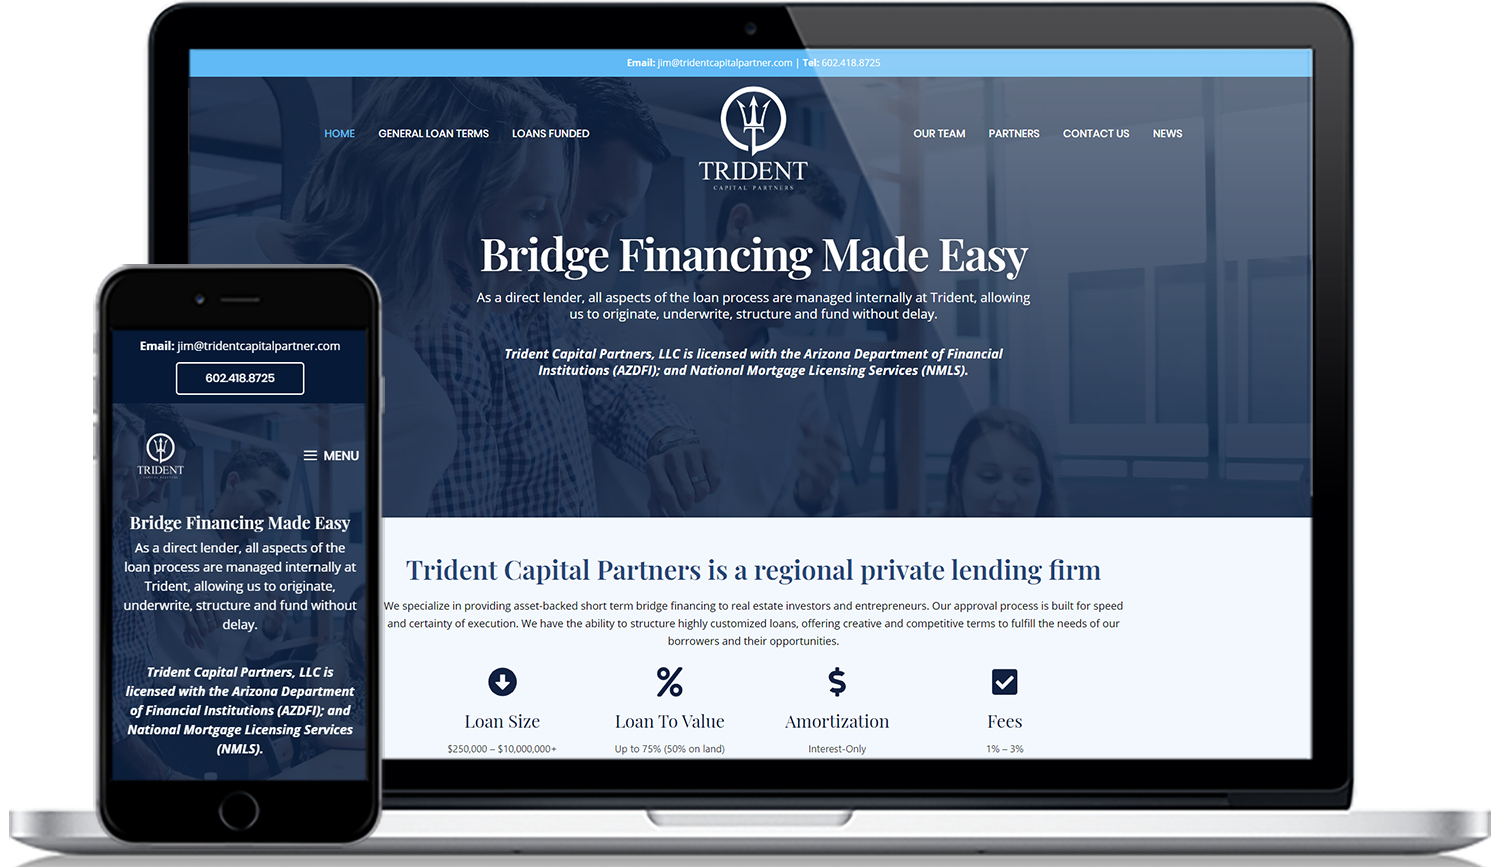 trident capital partners digital marketing